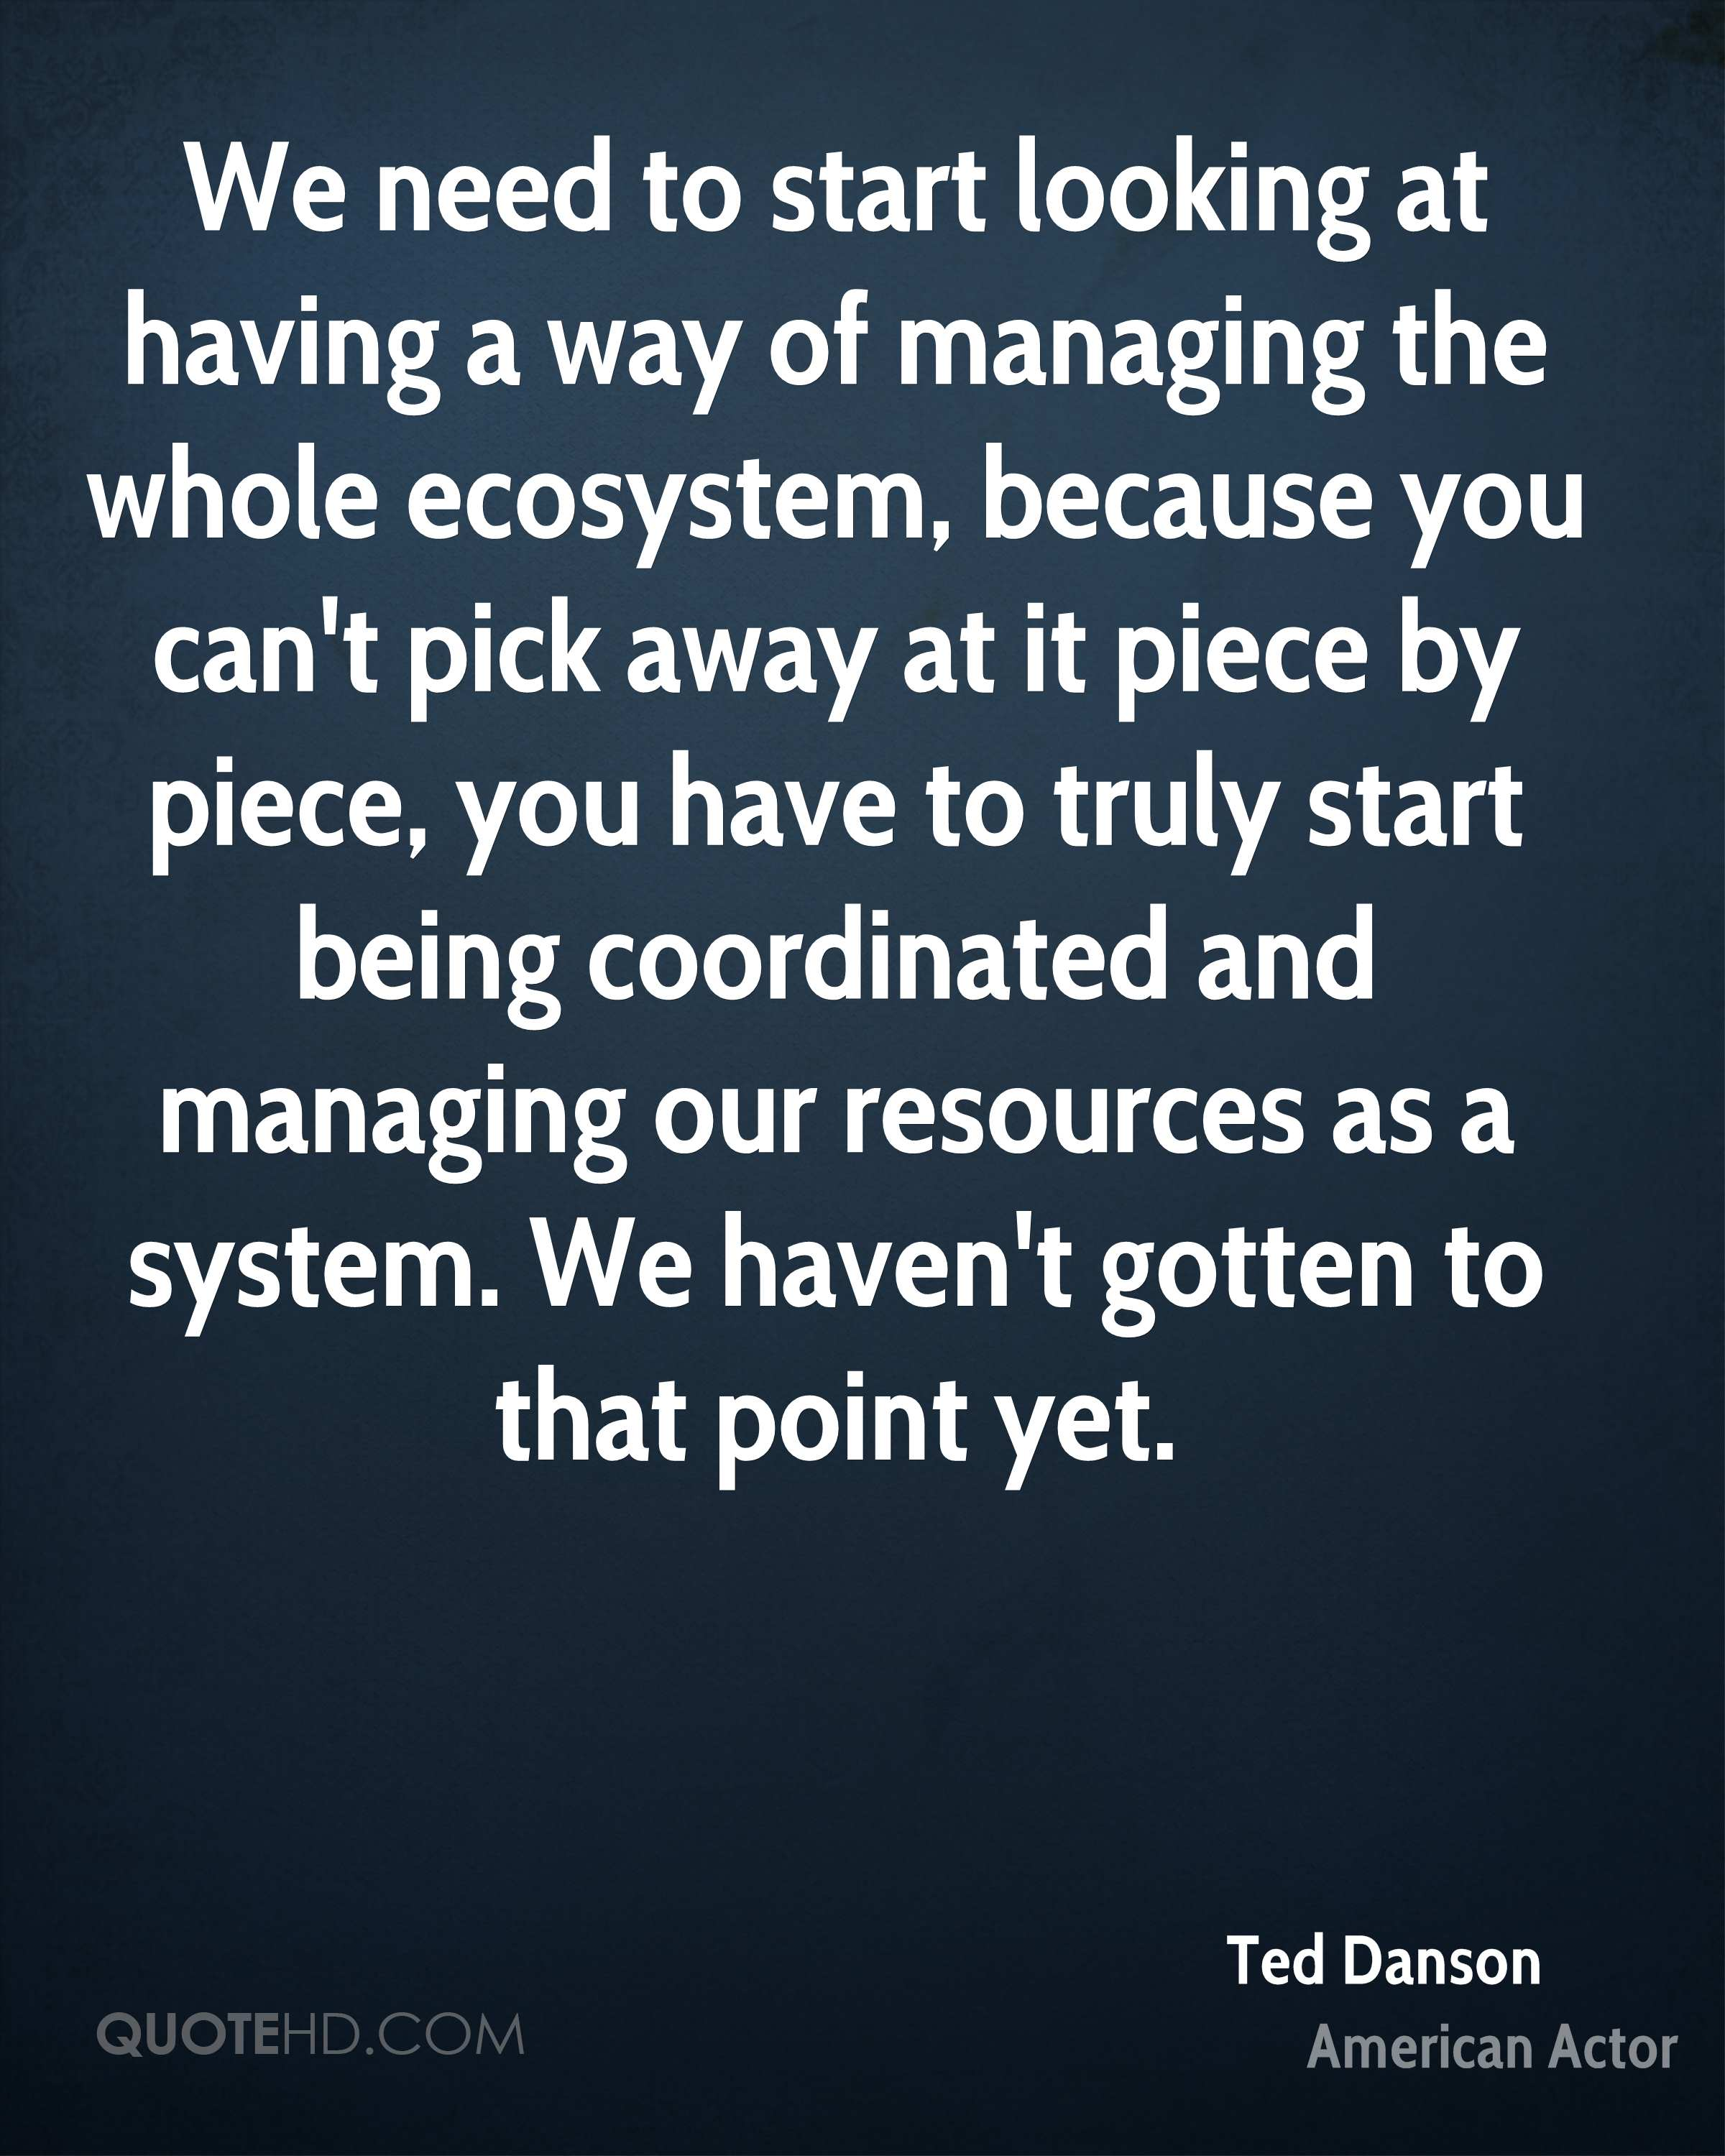 We need to start looking at having a way of managing the whole ecosystem, because you can't pick away at it piece by piece, you have to truly start being coordinated and managing our resources as a system. We haven't gotten to that point yet.